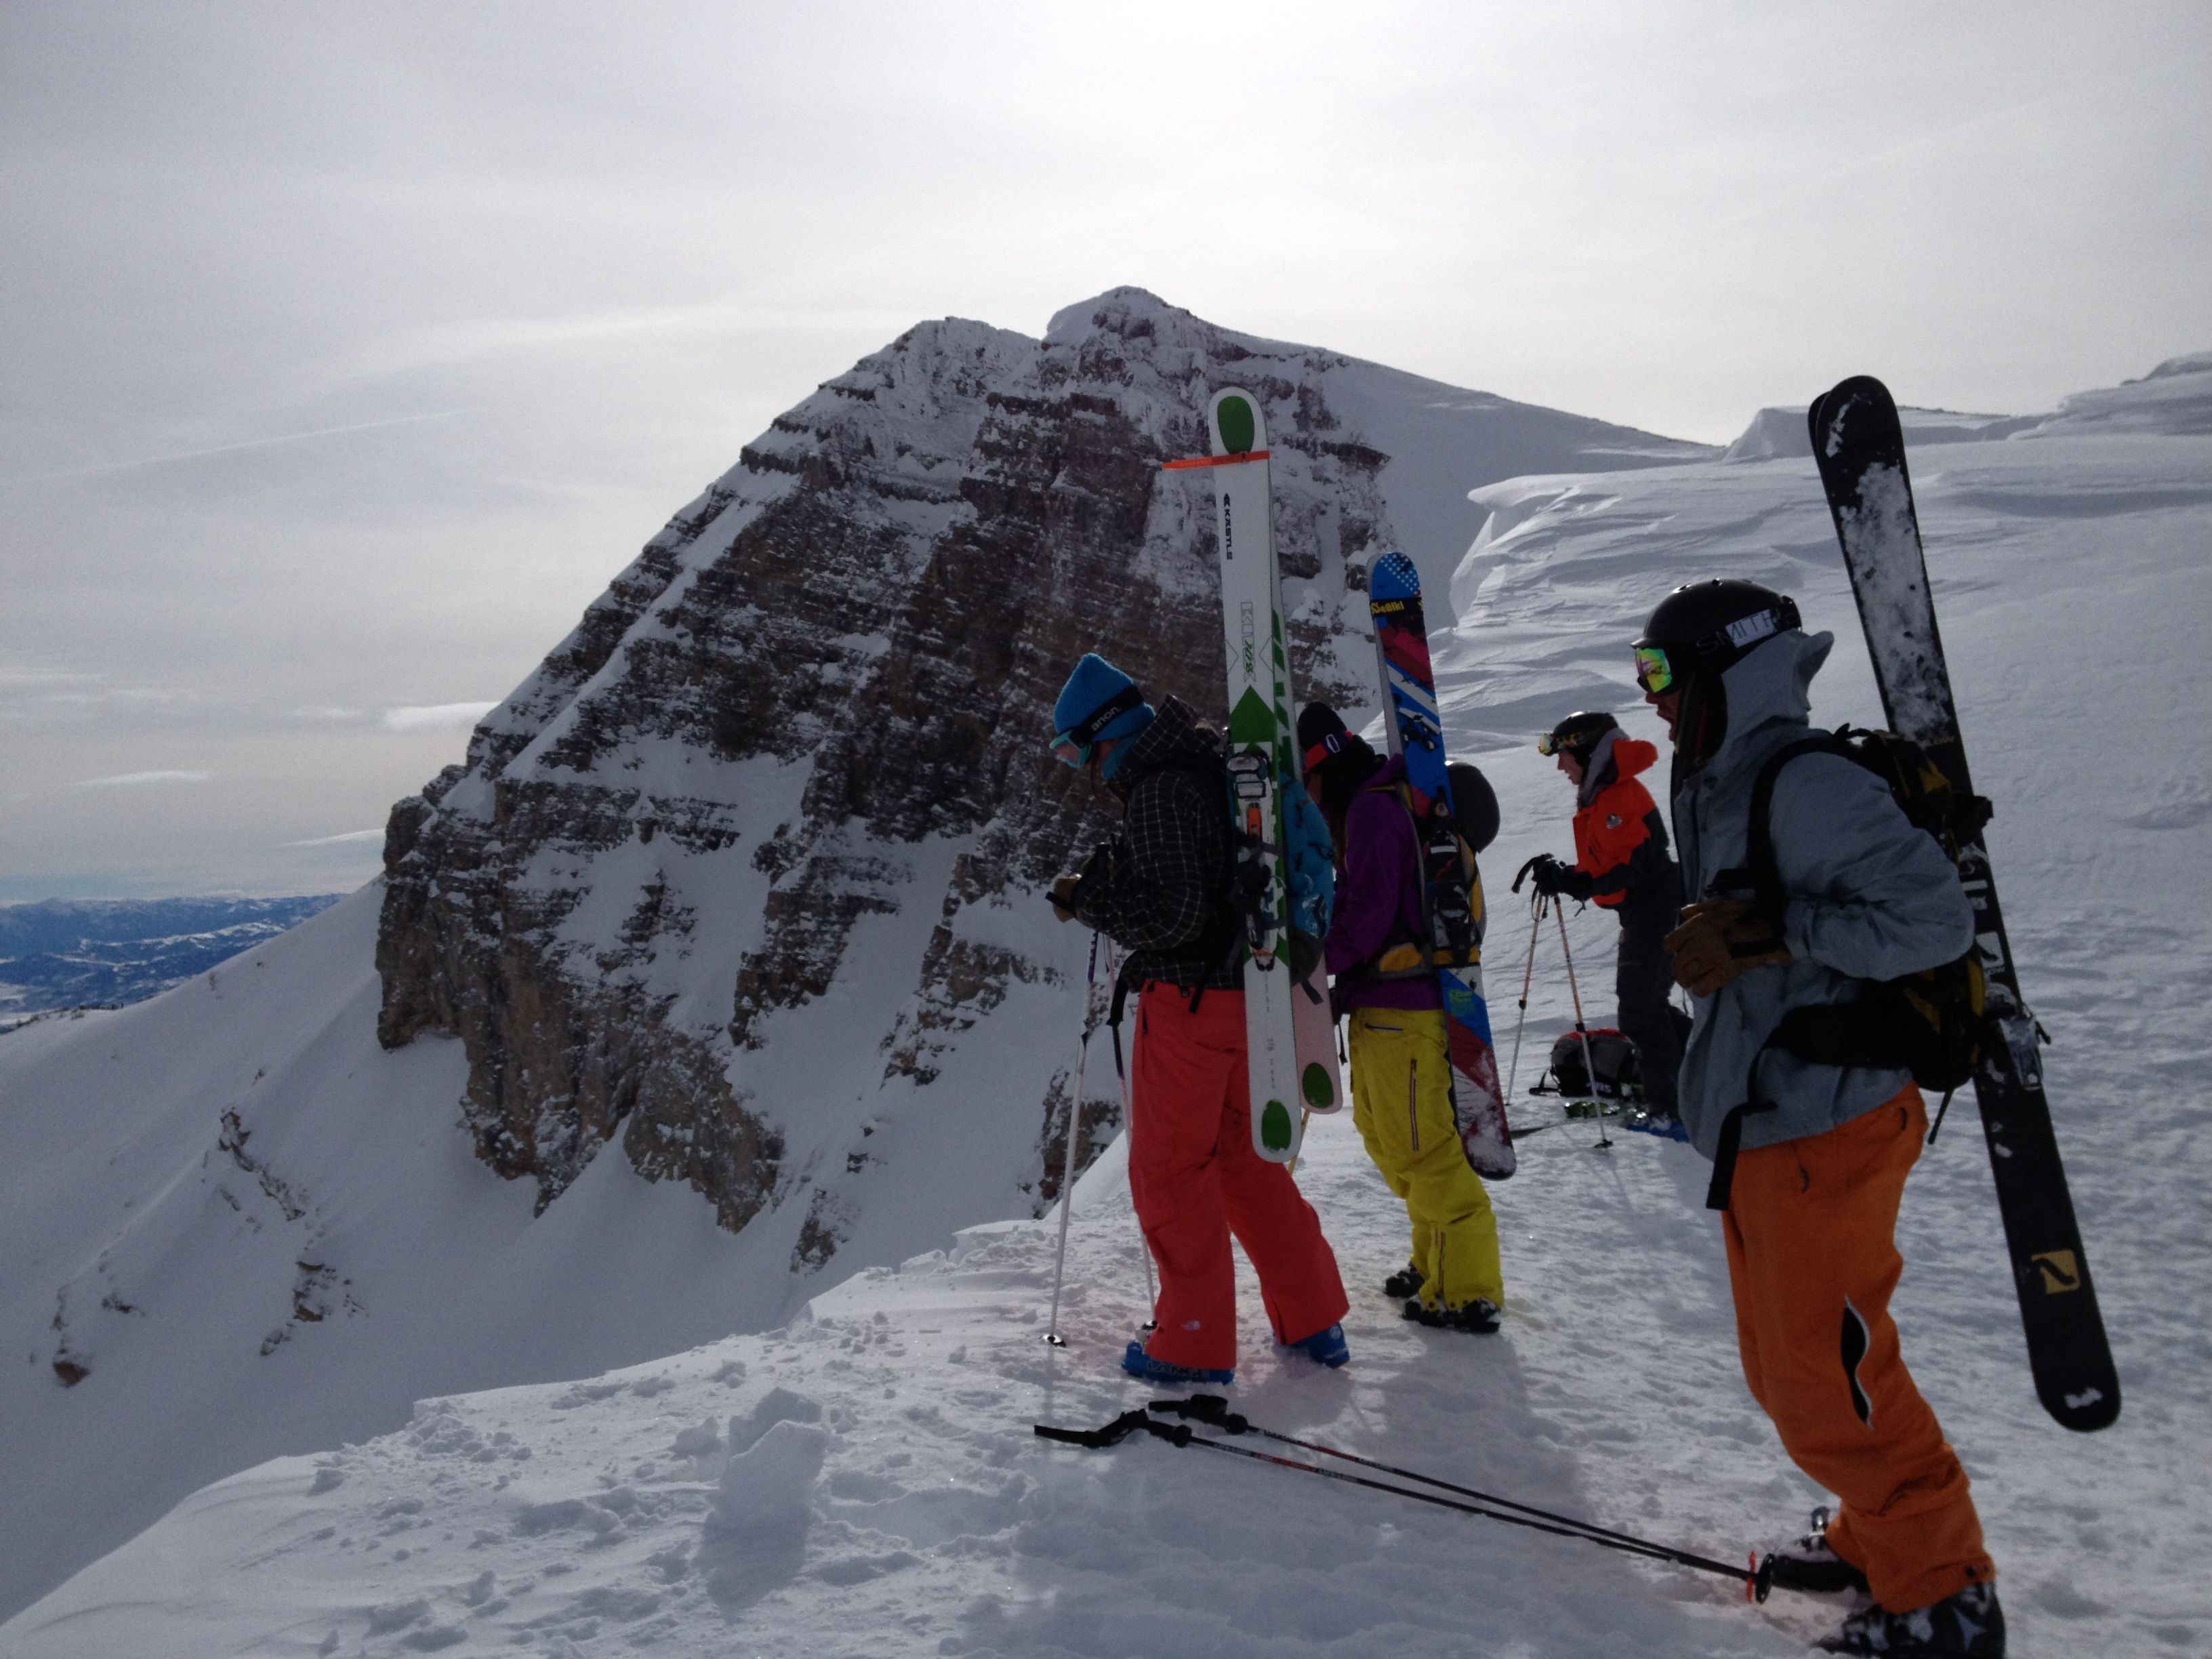 All in a days times jackson hole mountain resort time day